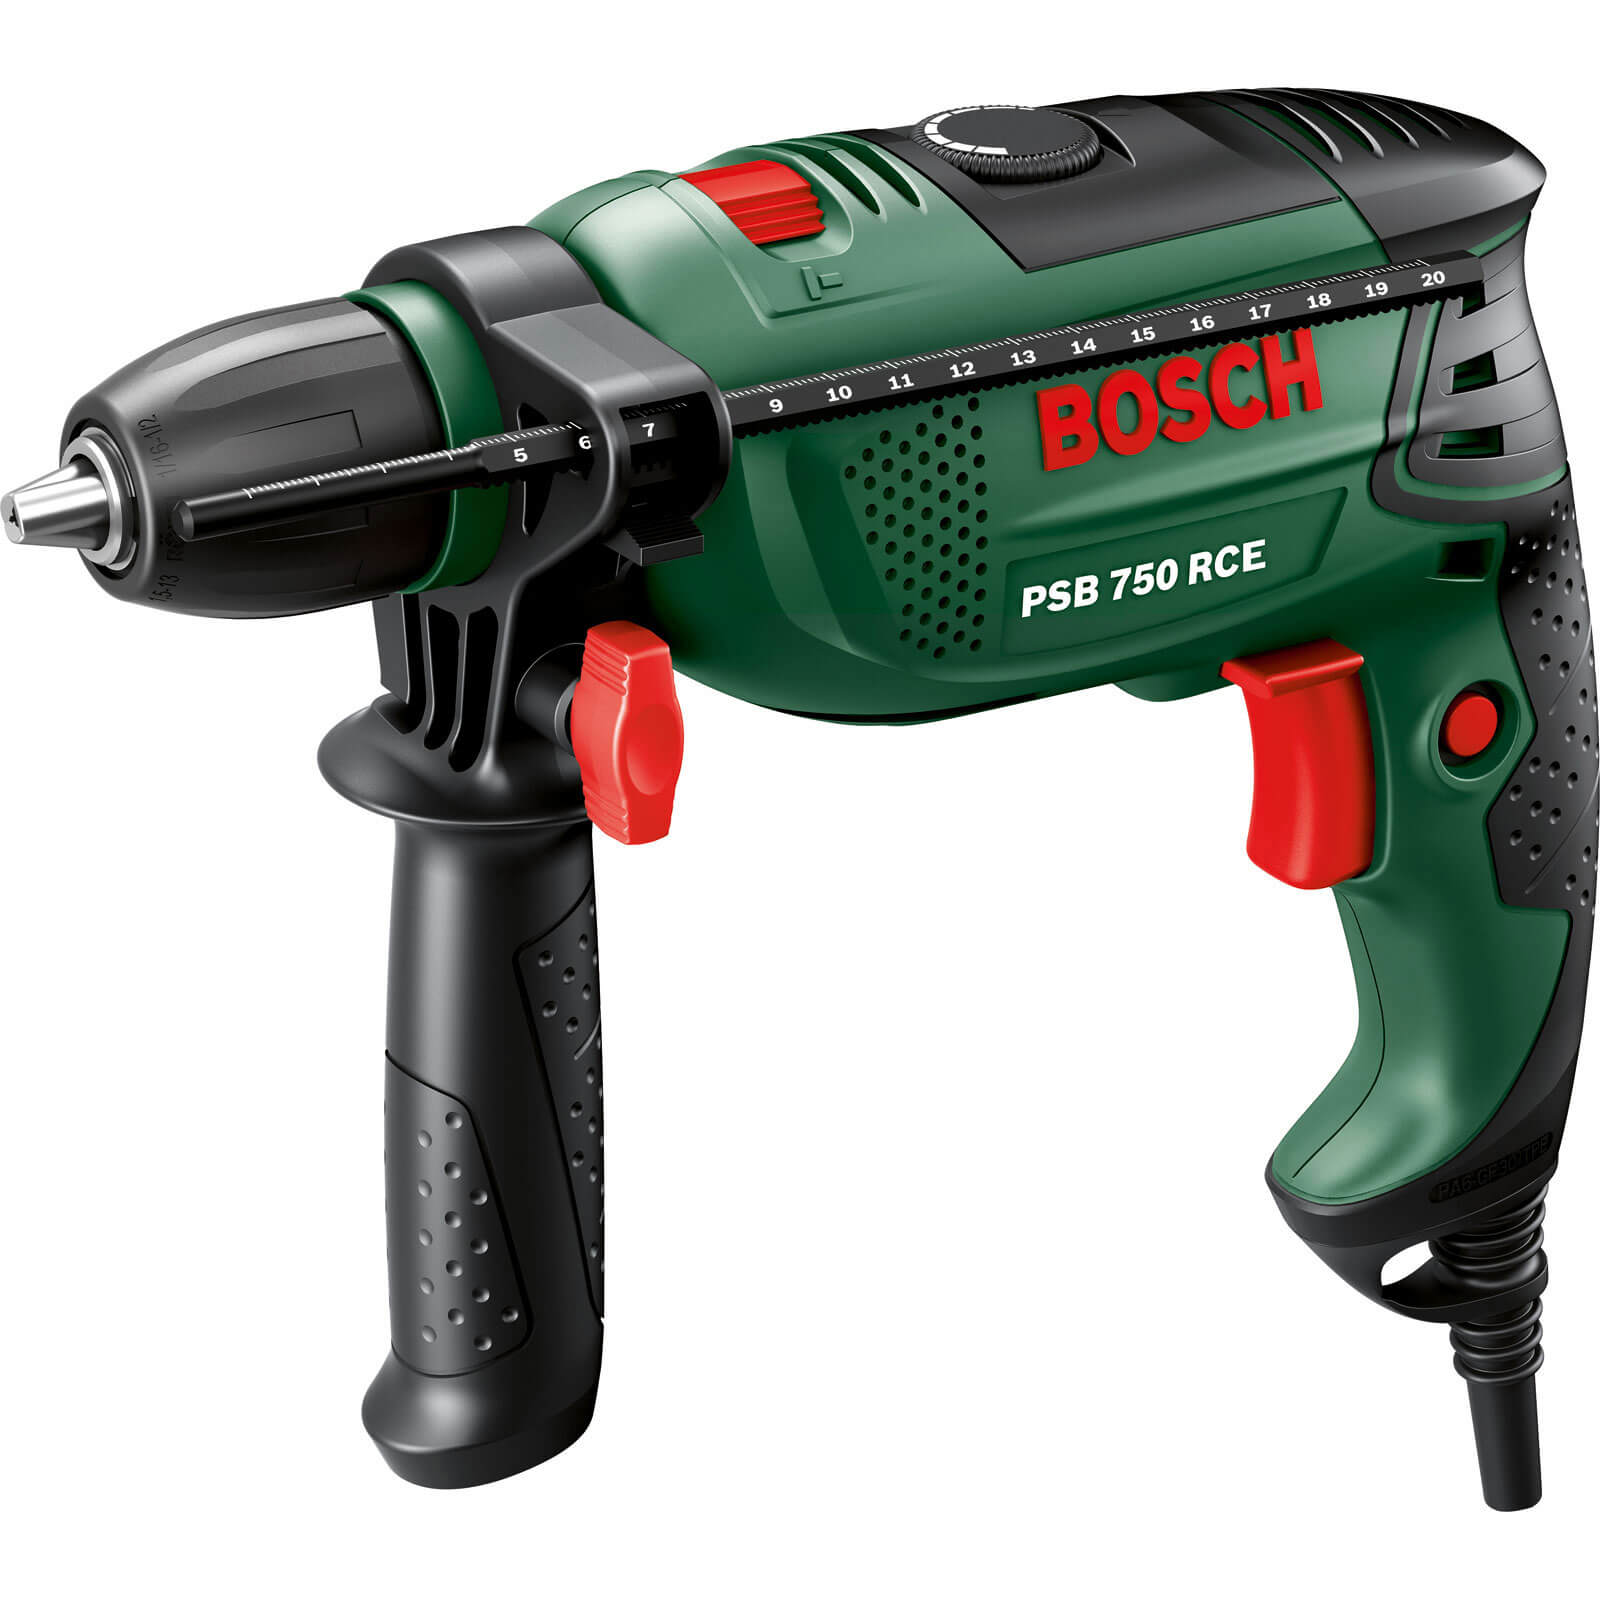 Bosch PSB 750 RCE Compact Electric Hammer Drill 750w 240v